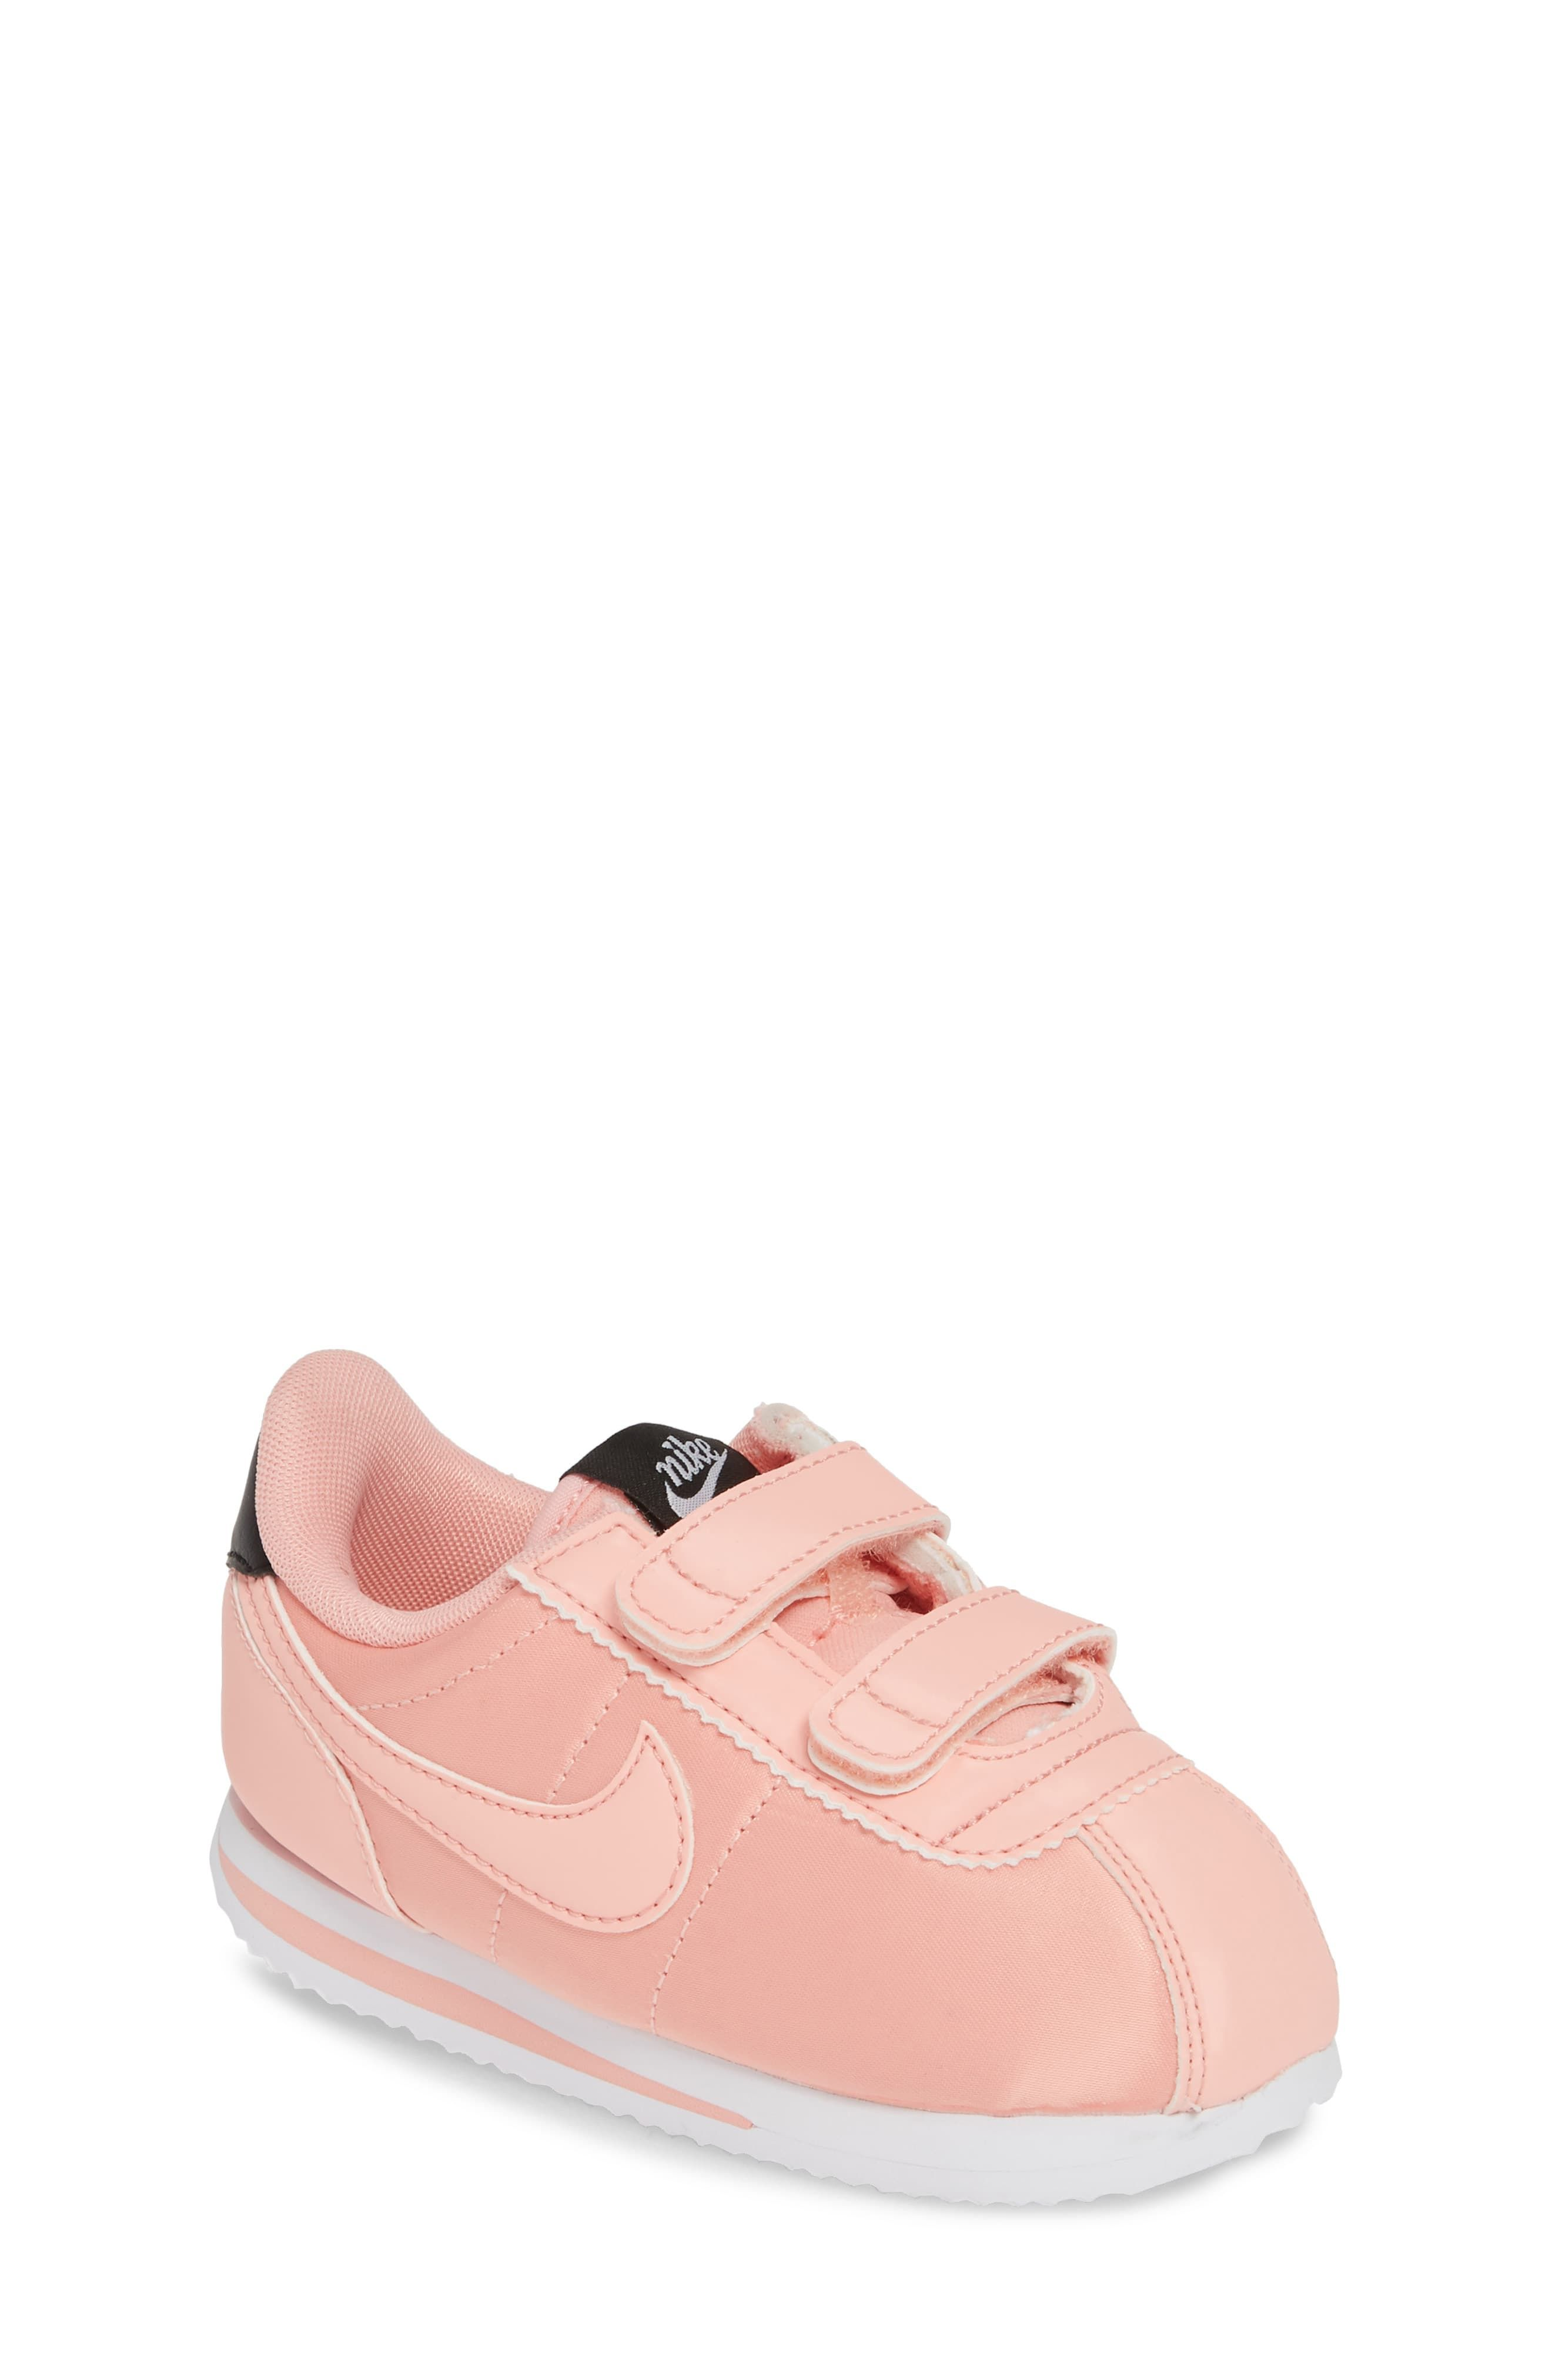 brand new 7bb6a 81aab Toddler Girl's Nike Cortez Sneaker, Size 10 M - Coral ...